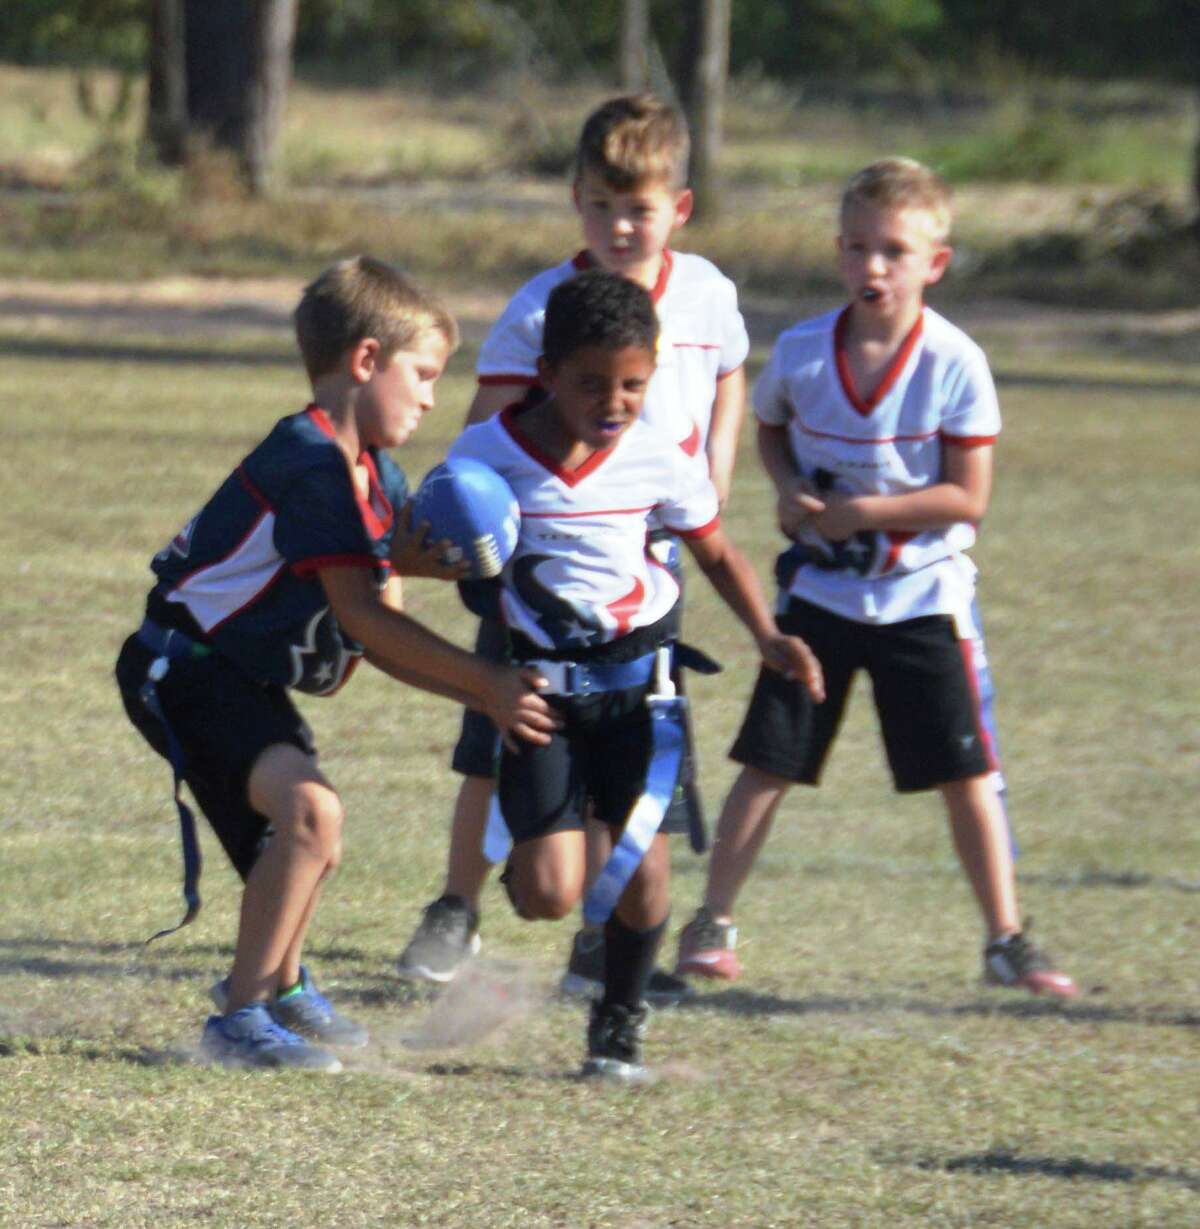 Register for Conroe Youth Flag Football's fall season for boys and girls ages 6-13. Your child will have a blast playing flag football developing speed, skill and agility. Cost is $30 for Conroe residents and $37 for non-residents. Extended registration deadline is Aug. 14.